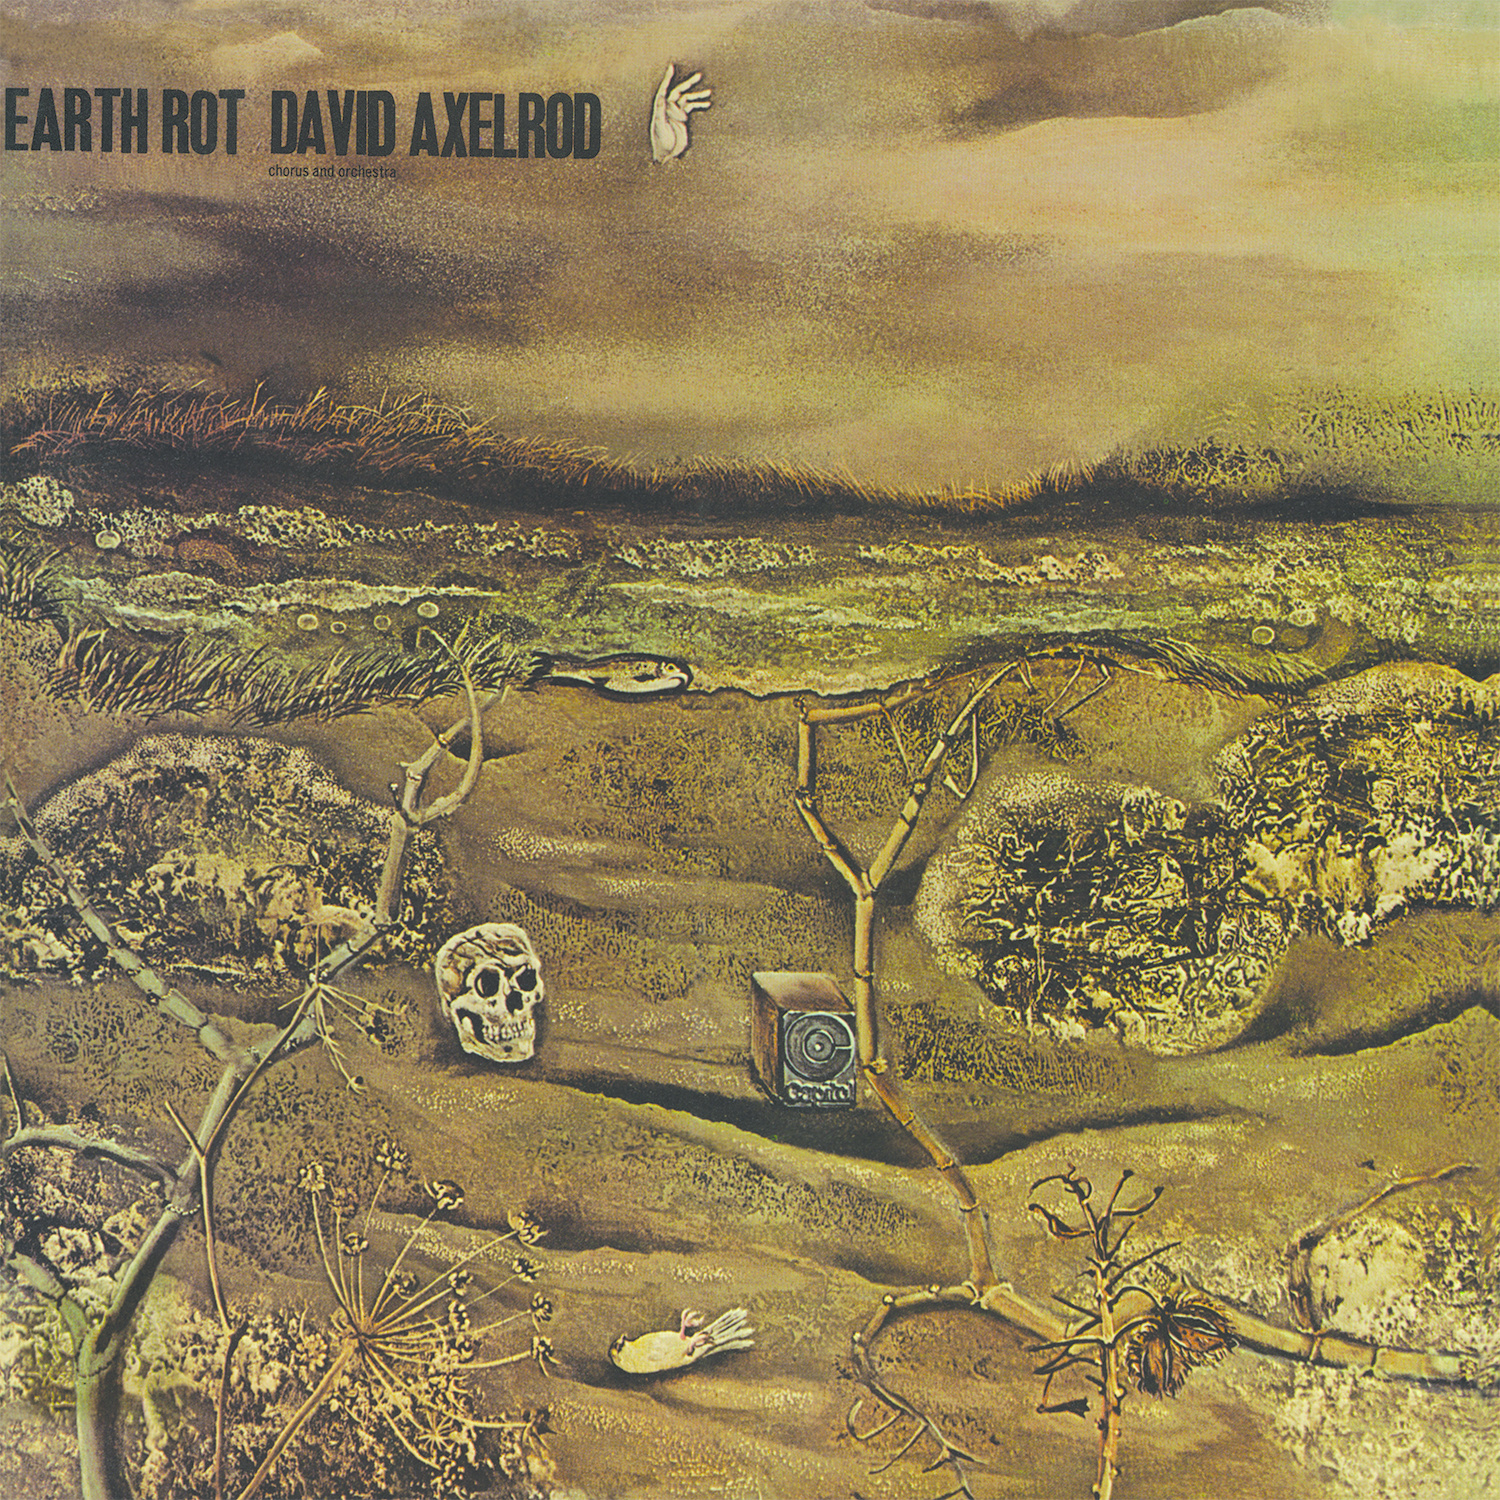 David Axelrod - Earth Rot [2LP] (gatefold, 28-pg booklet, never before released instrumentals, limited to 3000, indie-retail exclusive)